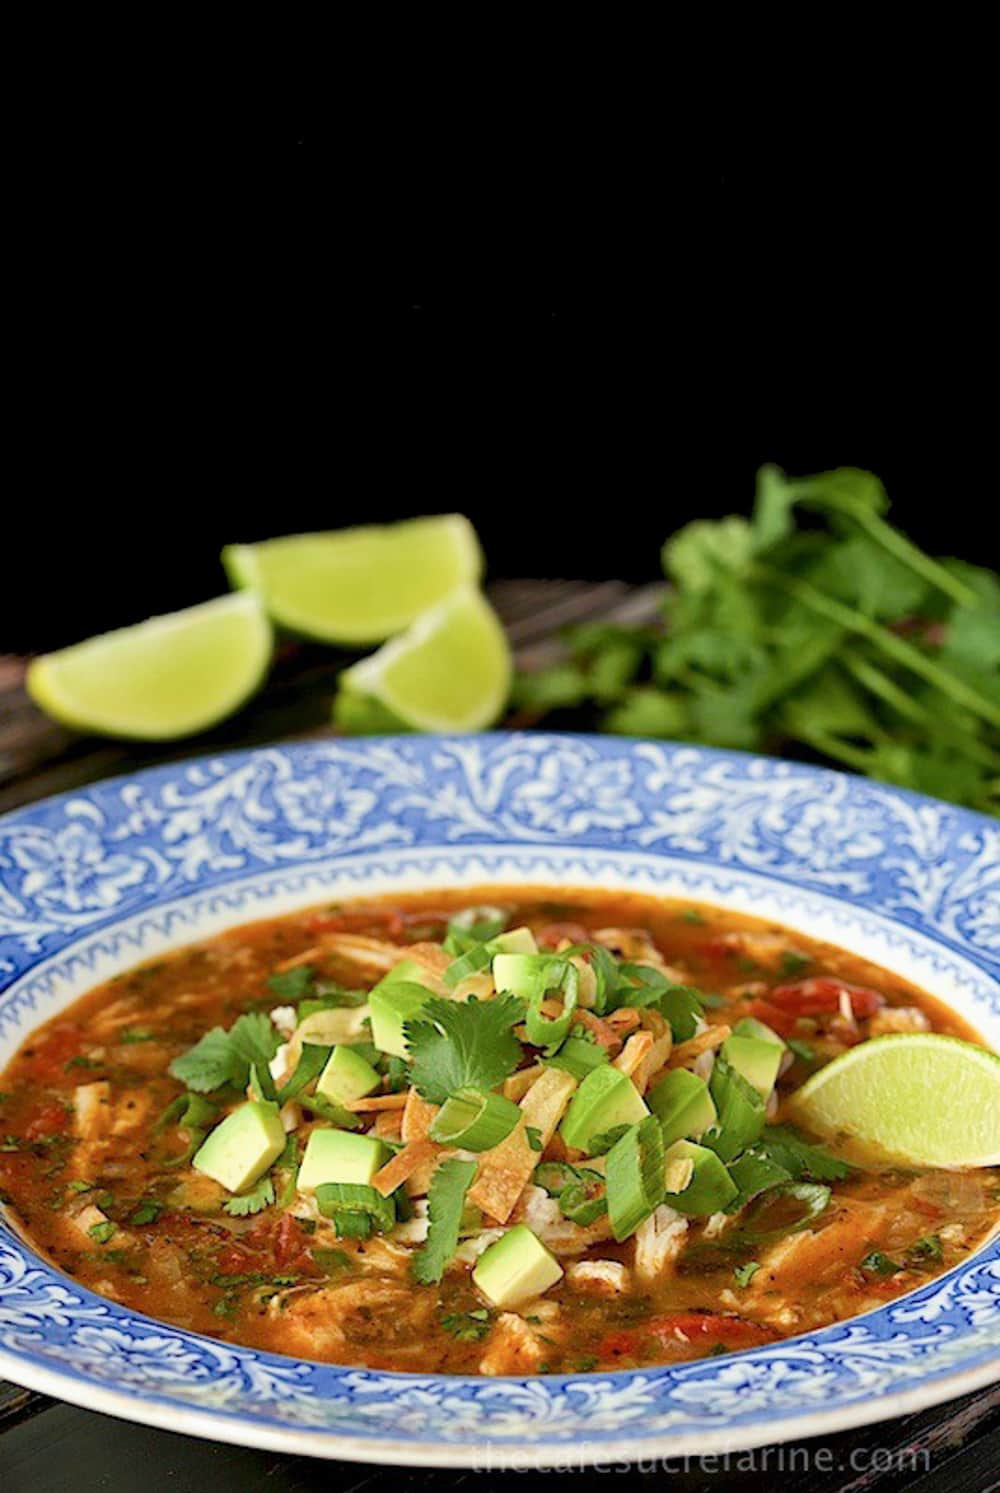 With layers of fabulous flavor this Turkey Tortilla Soup is perfect for leftover turkey (or chicken). It's not only delicious but also super healthy!